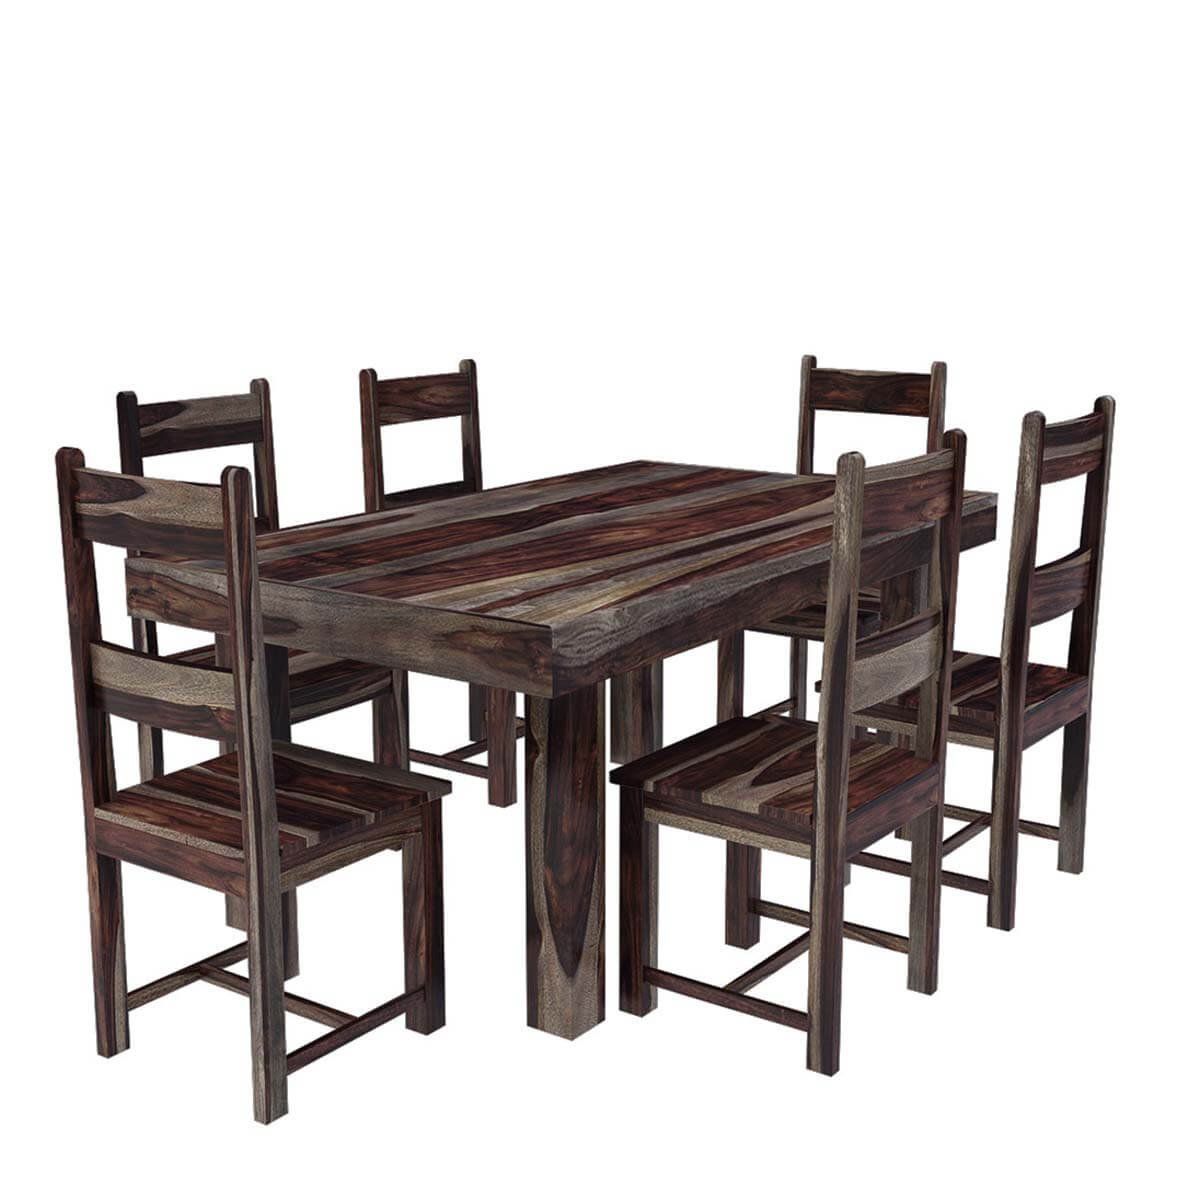 Frisco modern solid wood casual rustic dining room table for Dining room table and chair sets